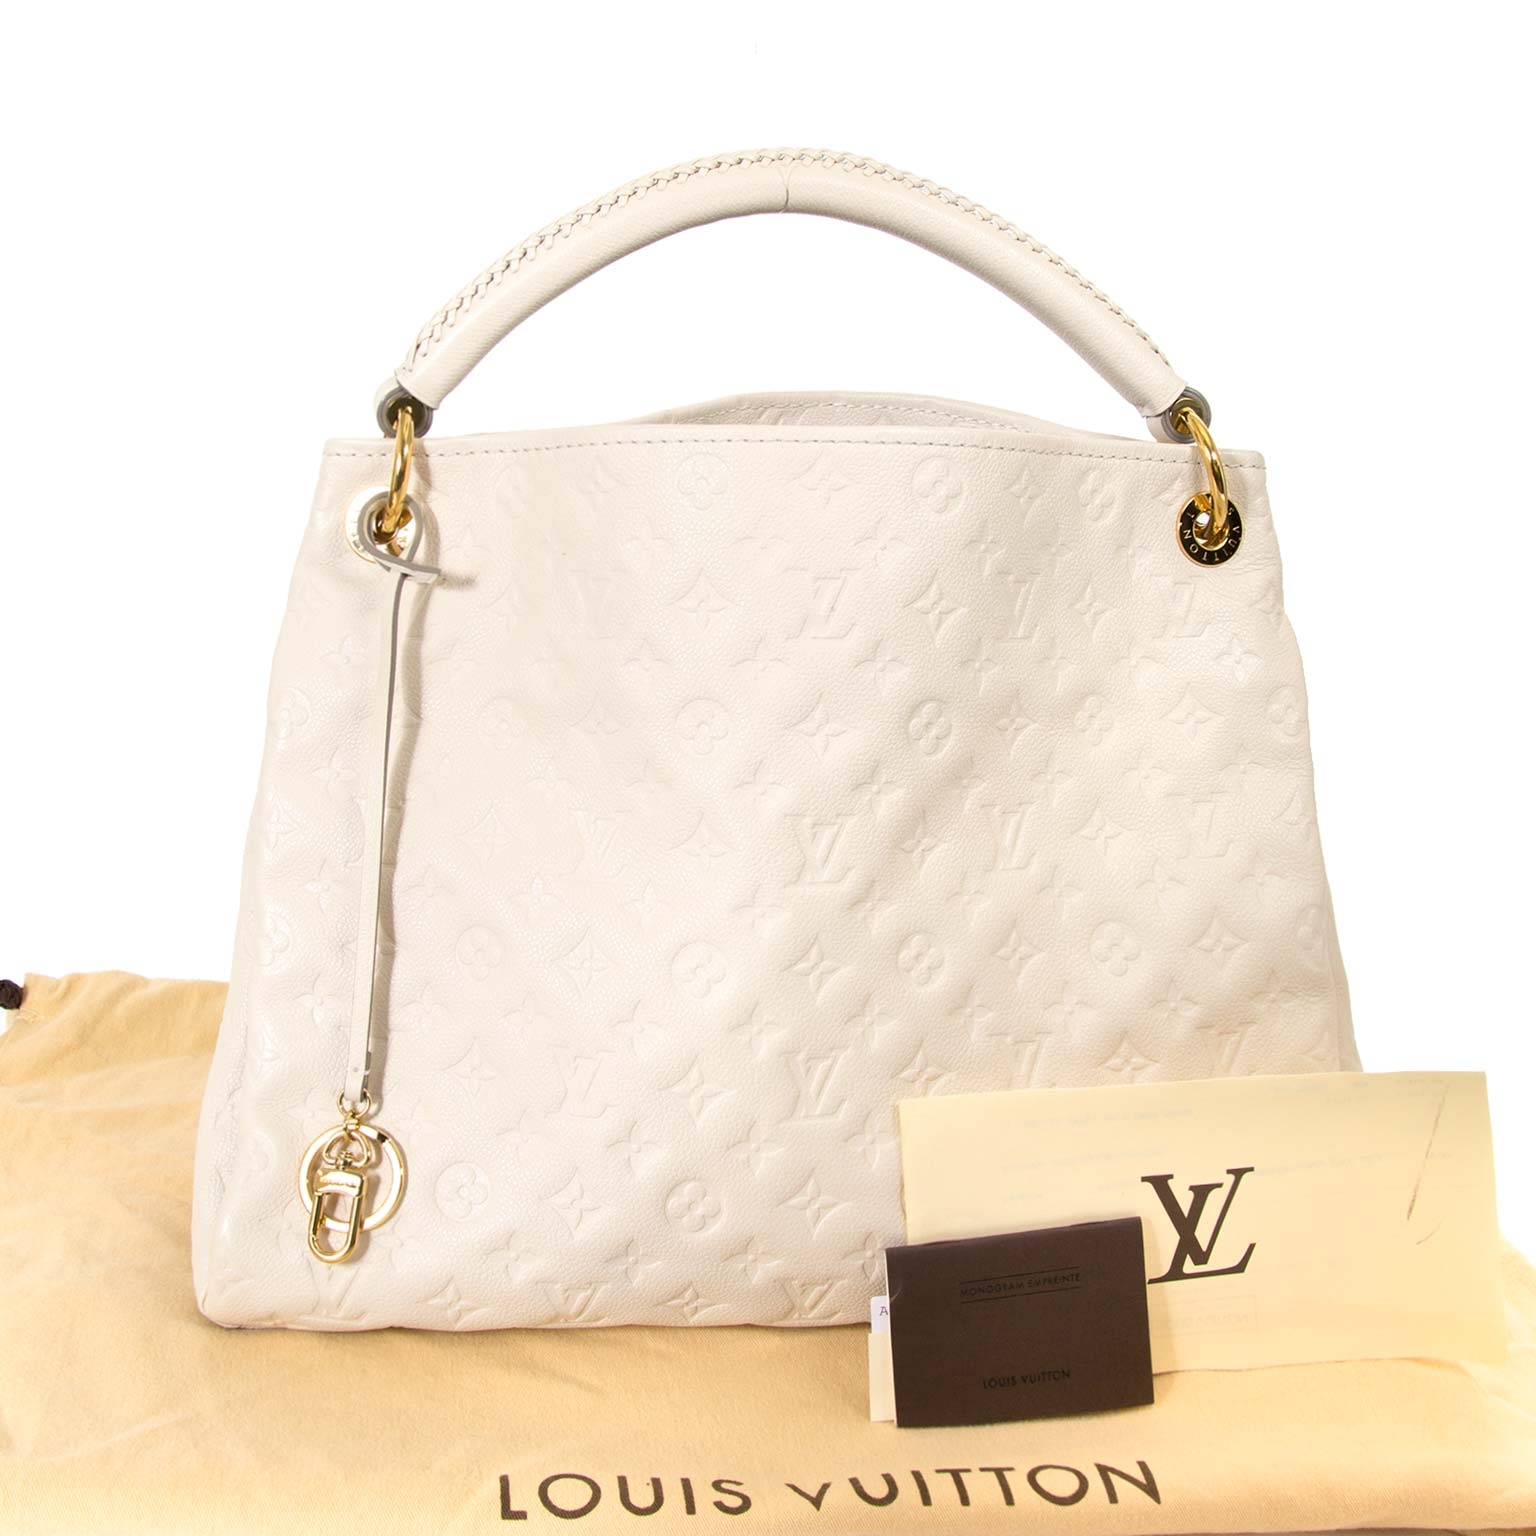 baa845bf778b ... louis vuitton white cream artsy mm bag now for sale at labellov vintage  fashion webshop belgium